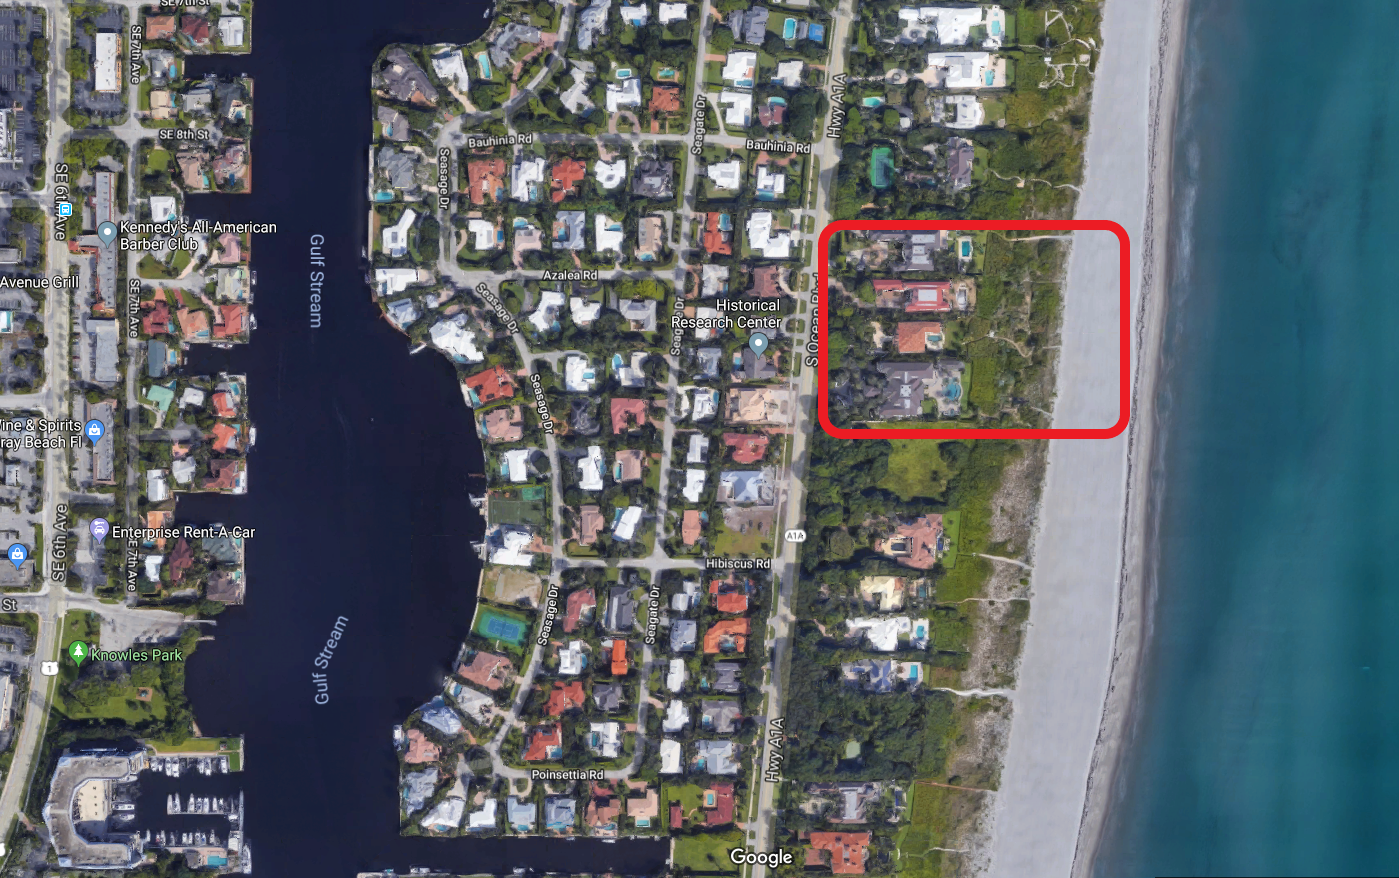 Delray Beach Turtle Beach Estates oceanfront luxury homes for sale aerial for Jean-Luc Andriot blog 110119